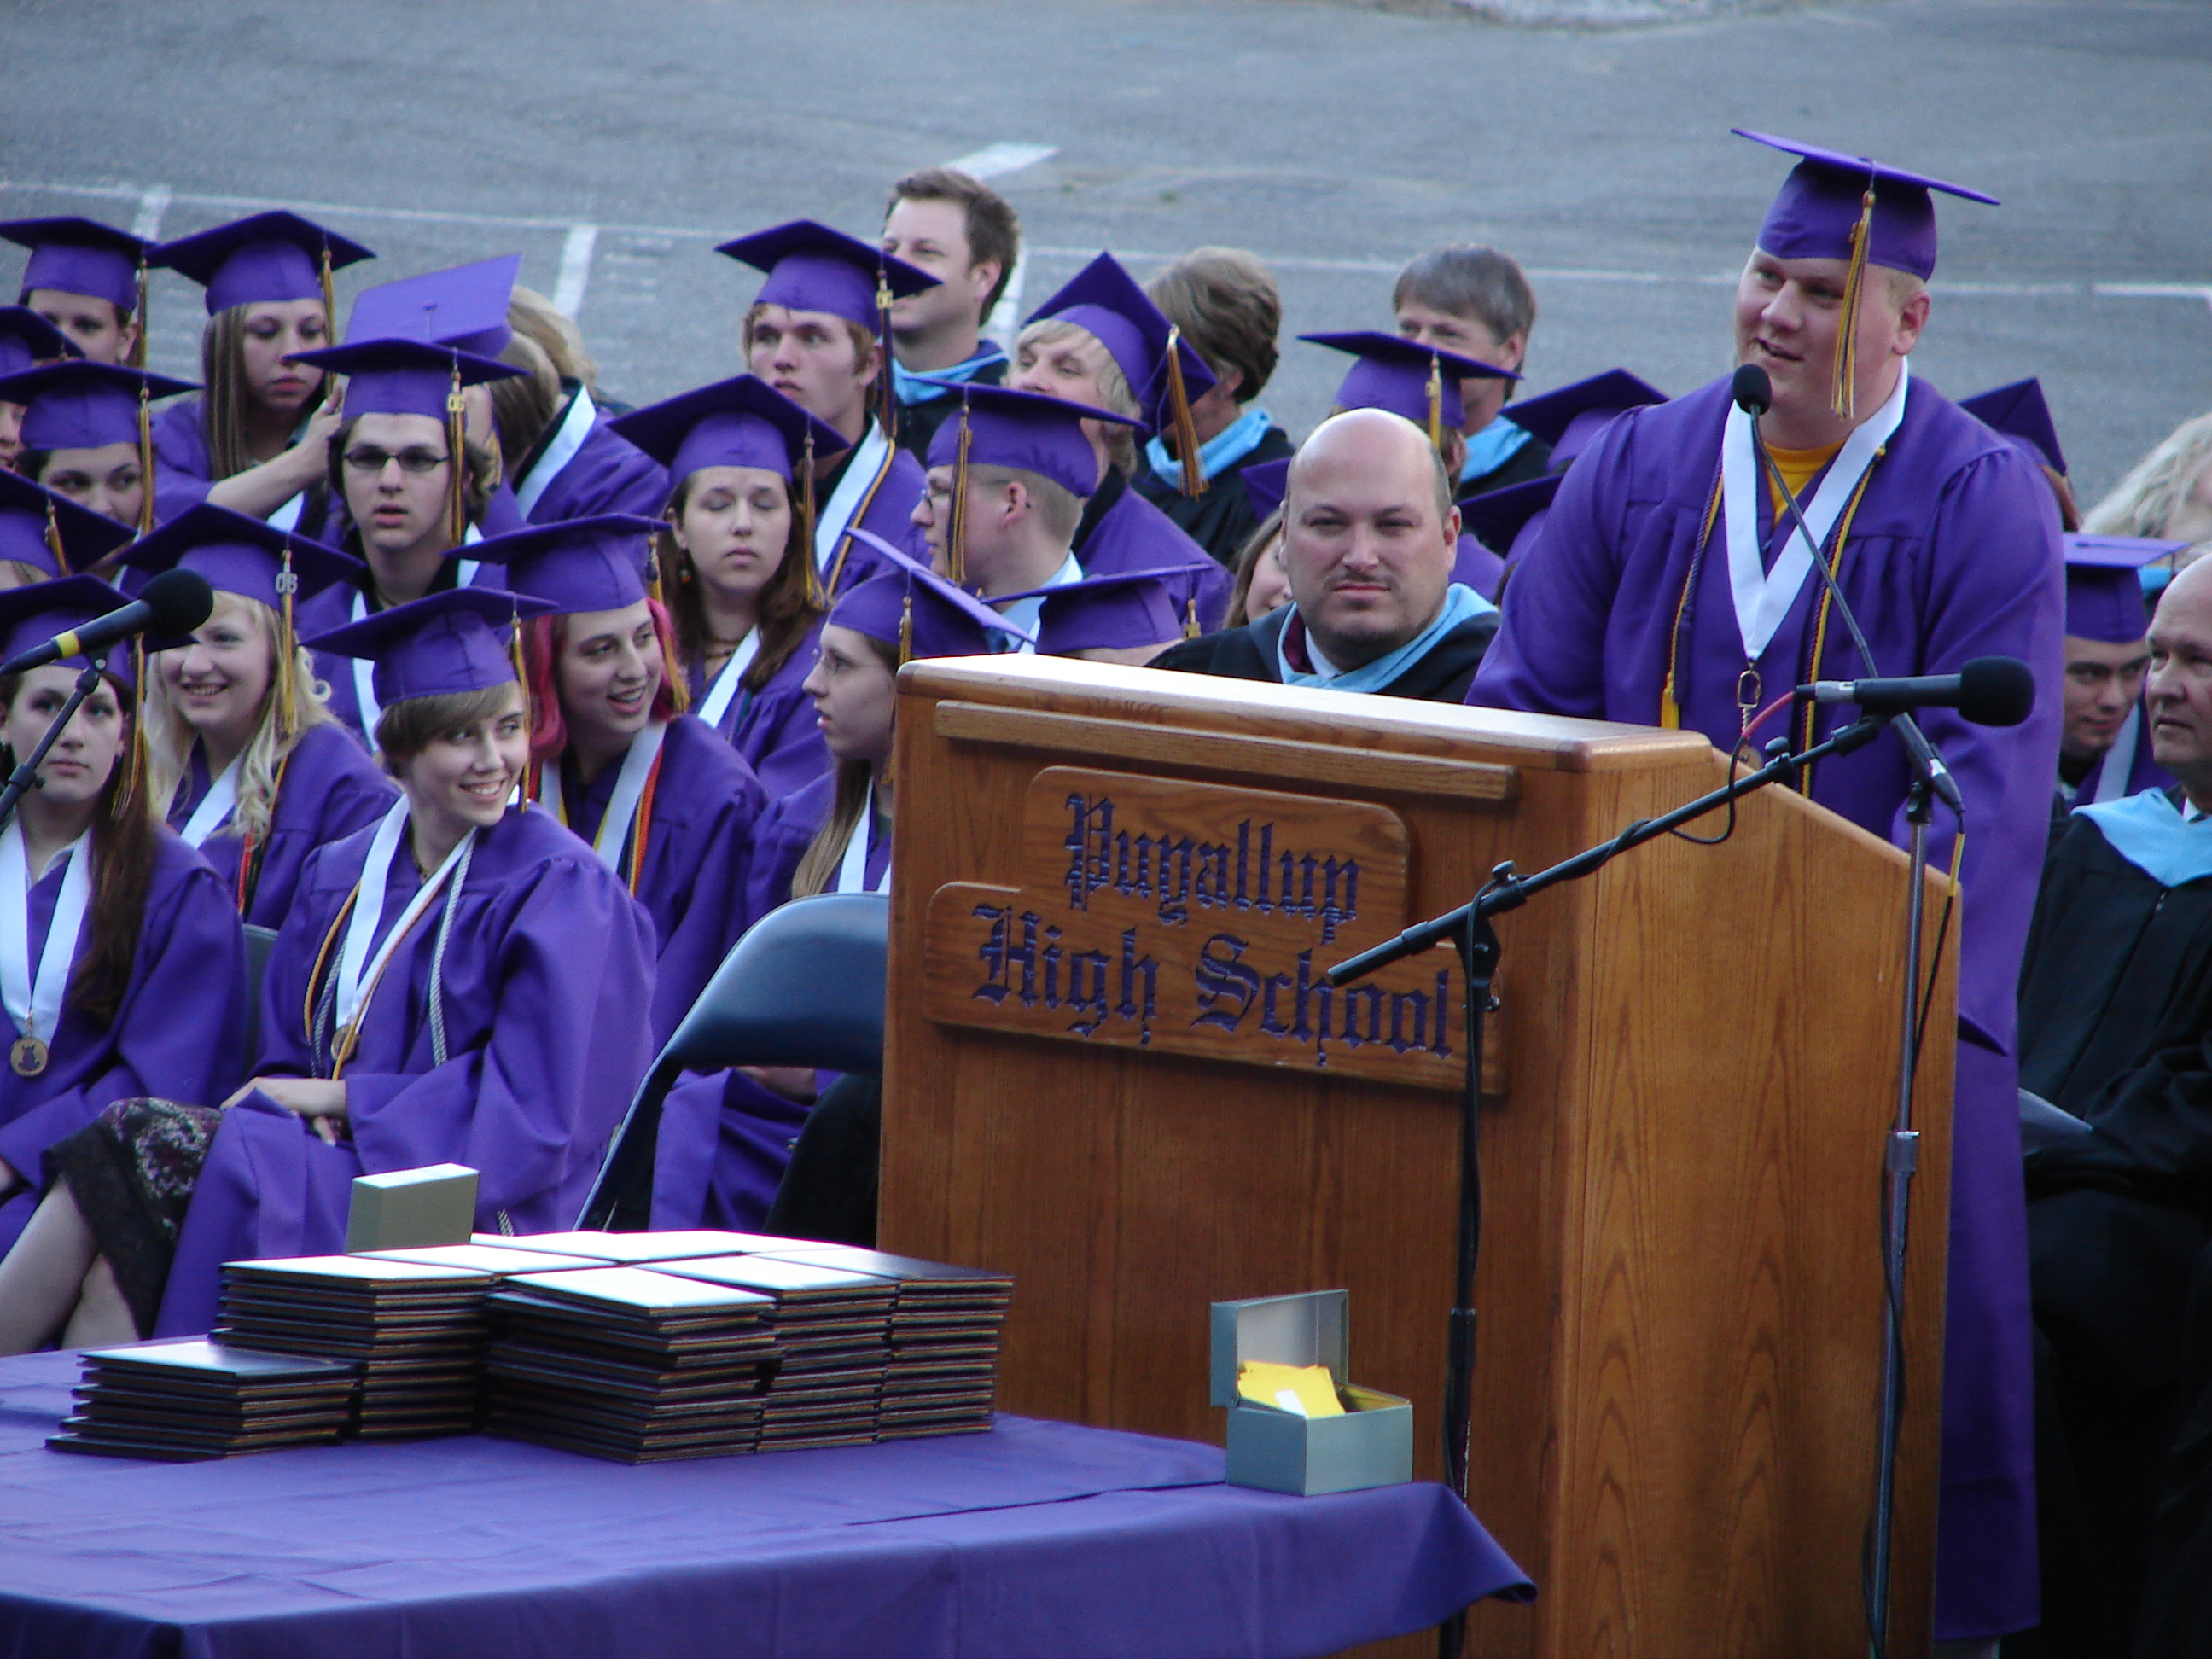 valedictory graduation speech 13 of the best graduation speeches of all time rachel sugar and richard feloni may 23, 2015, 8:00 am 348,266 commencement cliché, the surgeon.